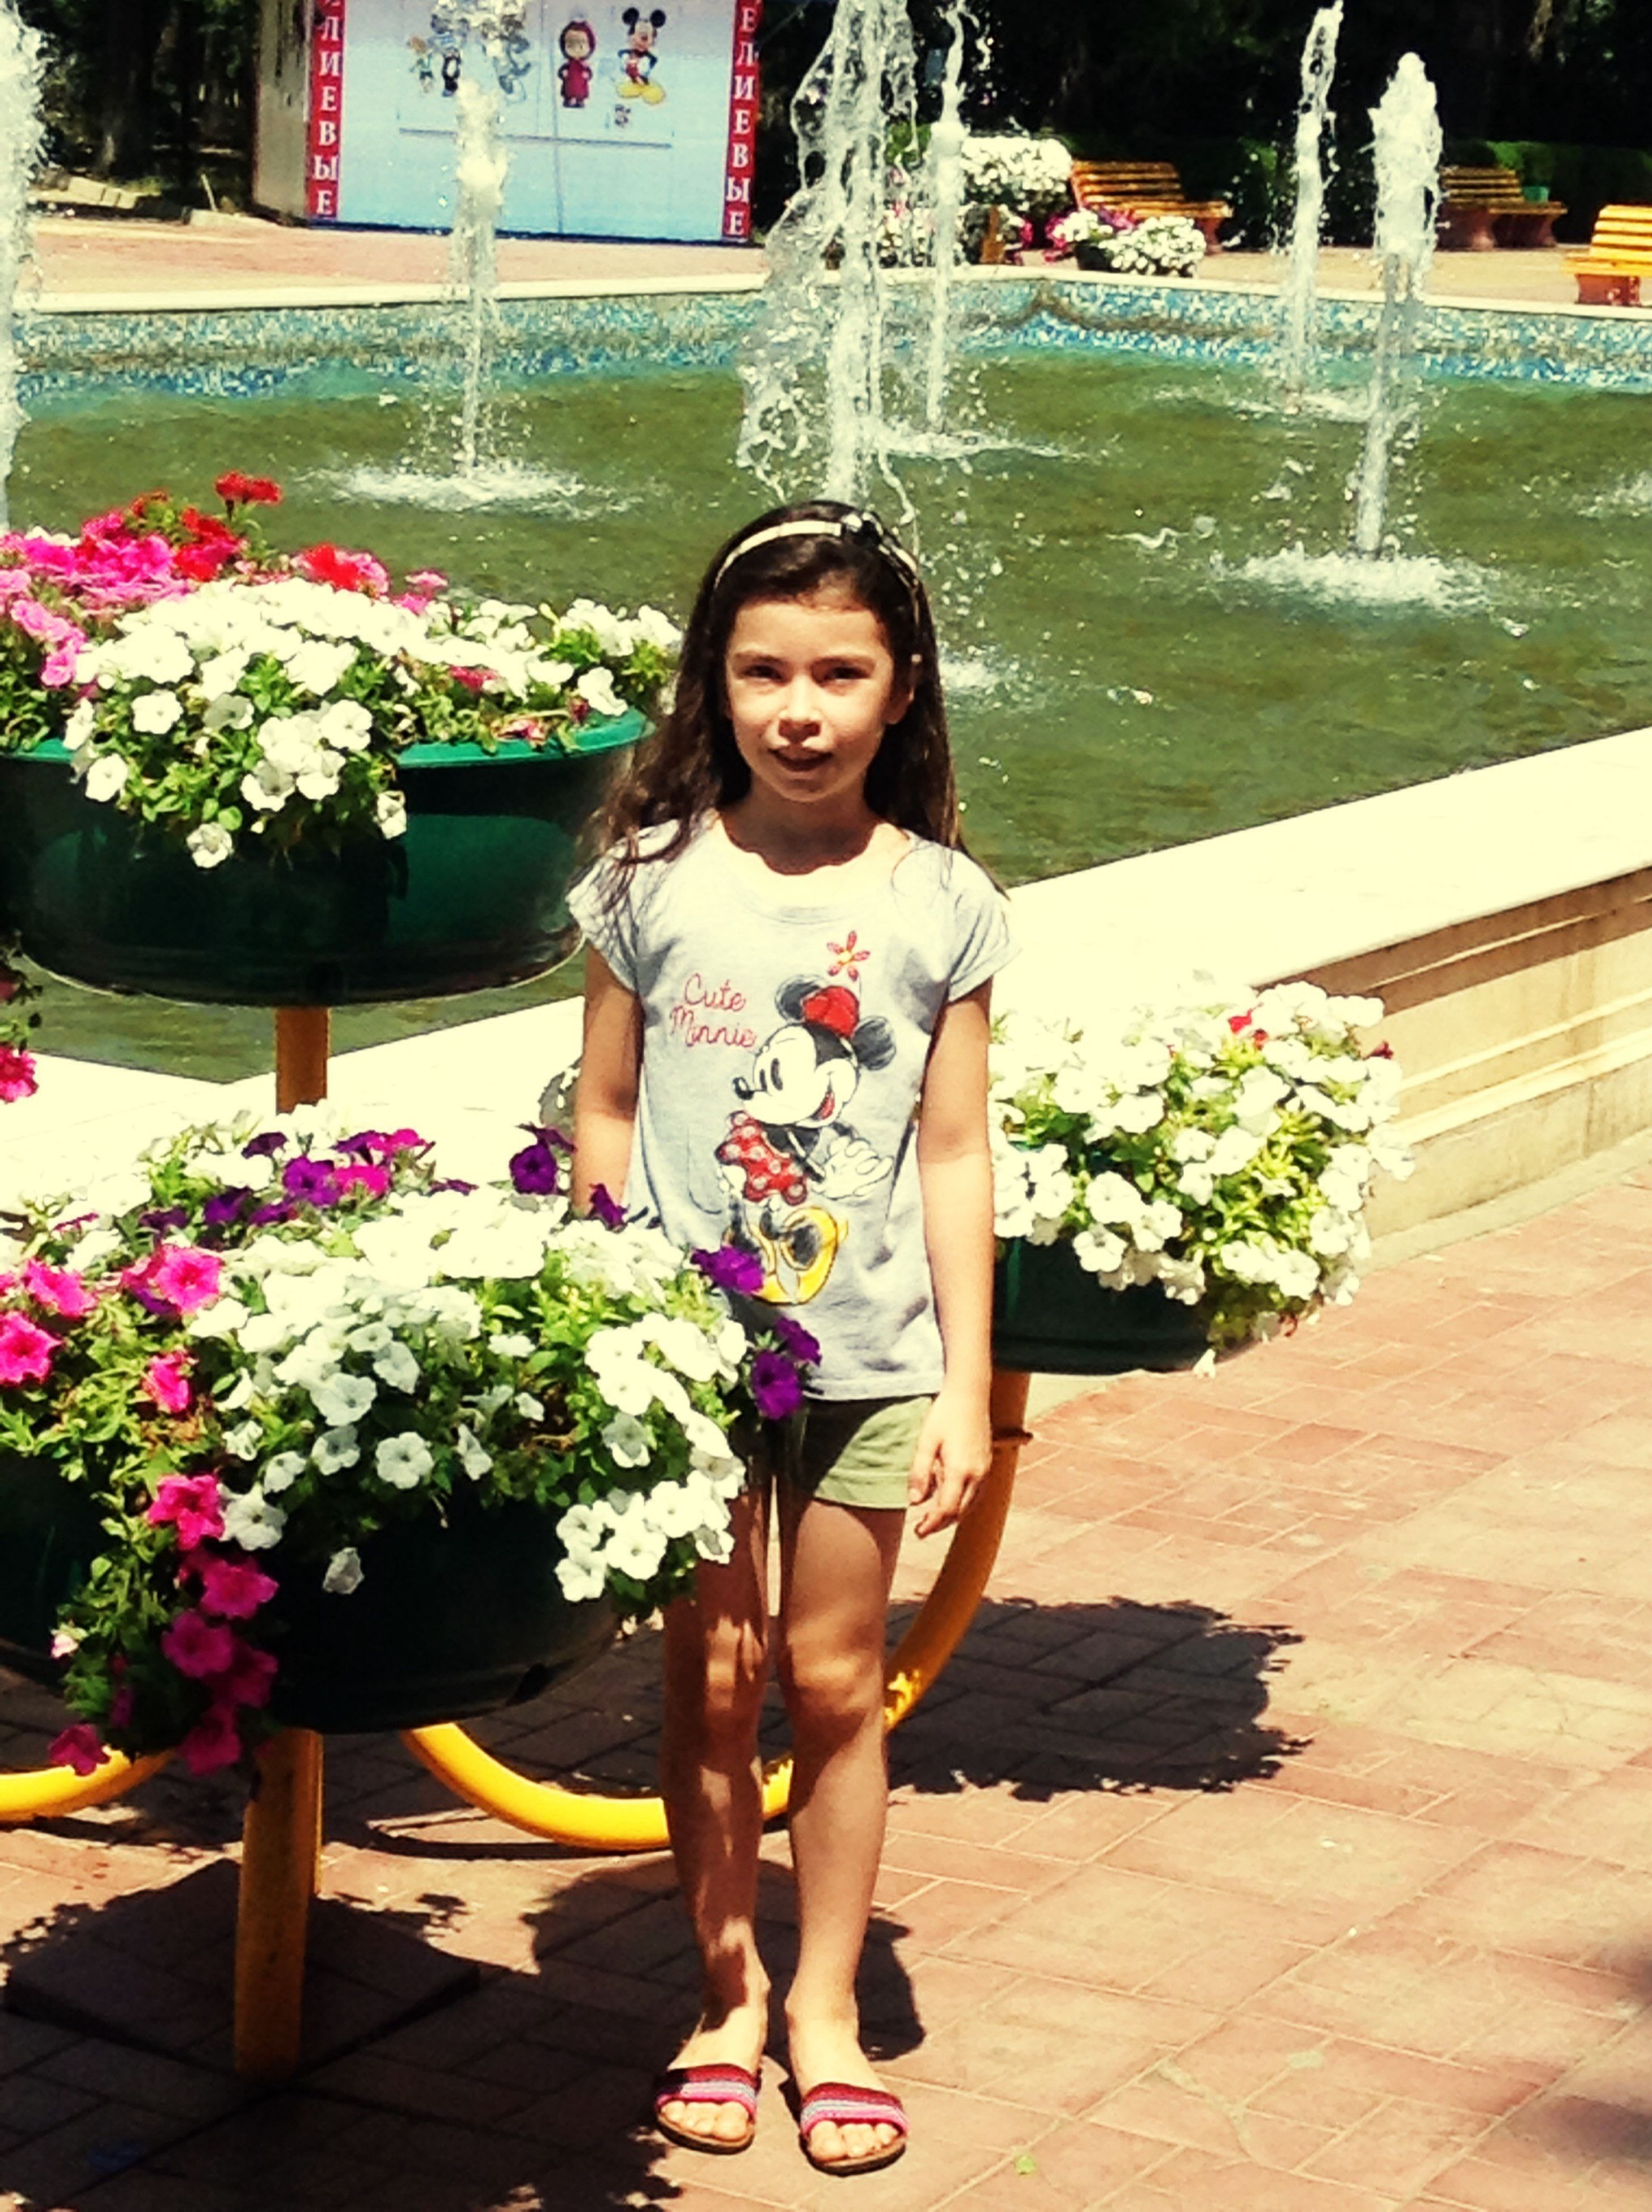 flower, full length, standing, smiling, girls, lifestyles, leisure activity, childhood, potted plant, person, front view, portrait, casual clothing, elementary age, holding, looking at camera, freshness, plant, day, bouquet, long hair, outdoors, beauty, vacations